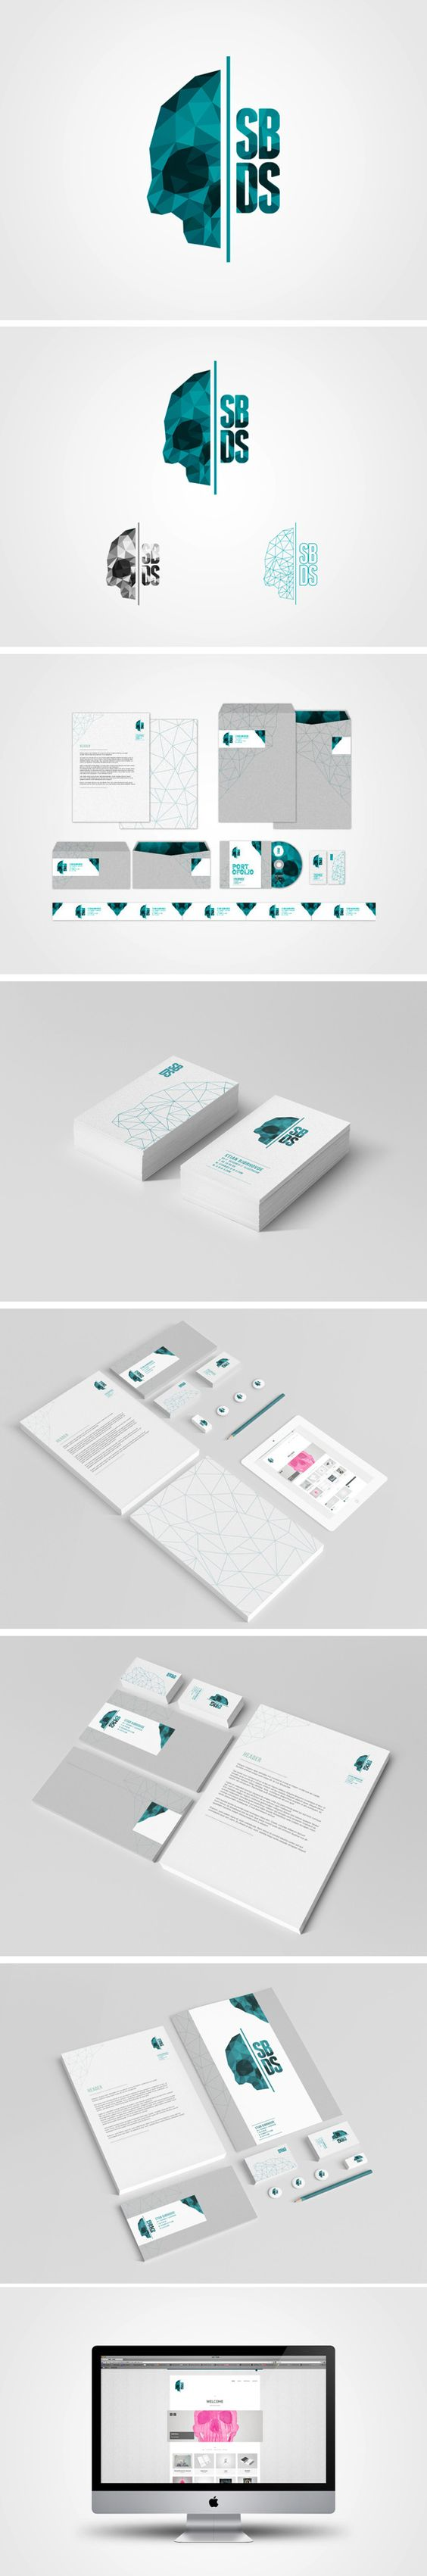 "SBDS's ""Self-Branding"" from Stian Bjørhovde Design Studio, via Behance. I love that despite using polygon design trends, it's still unique branding."